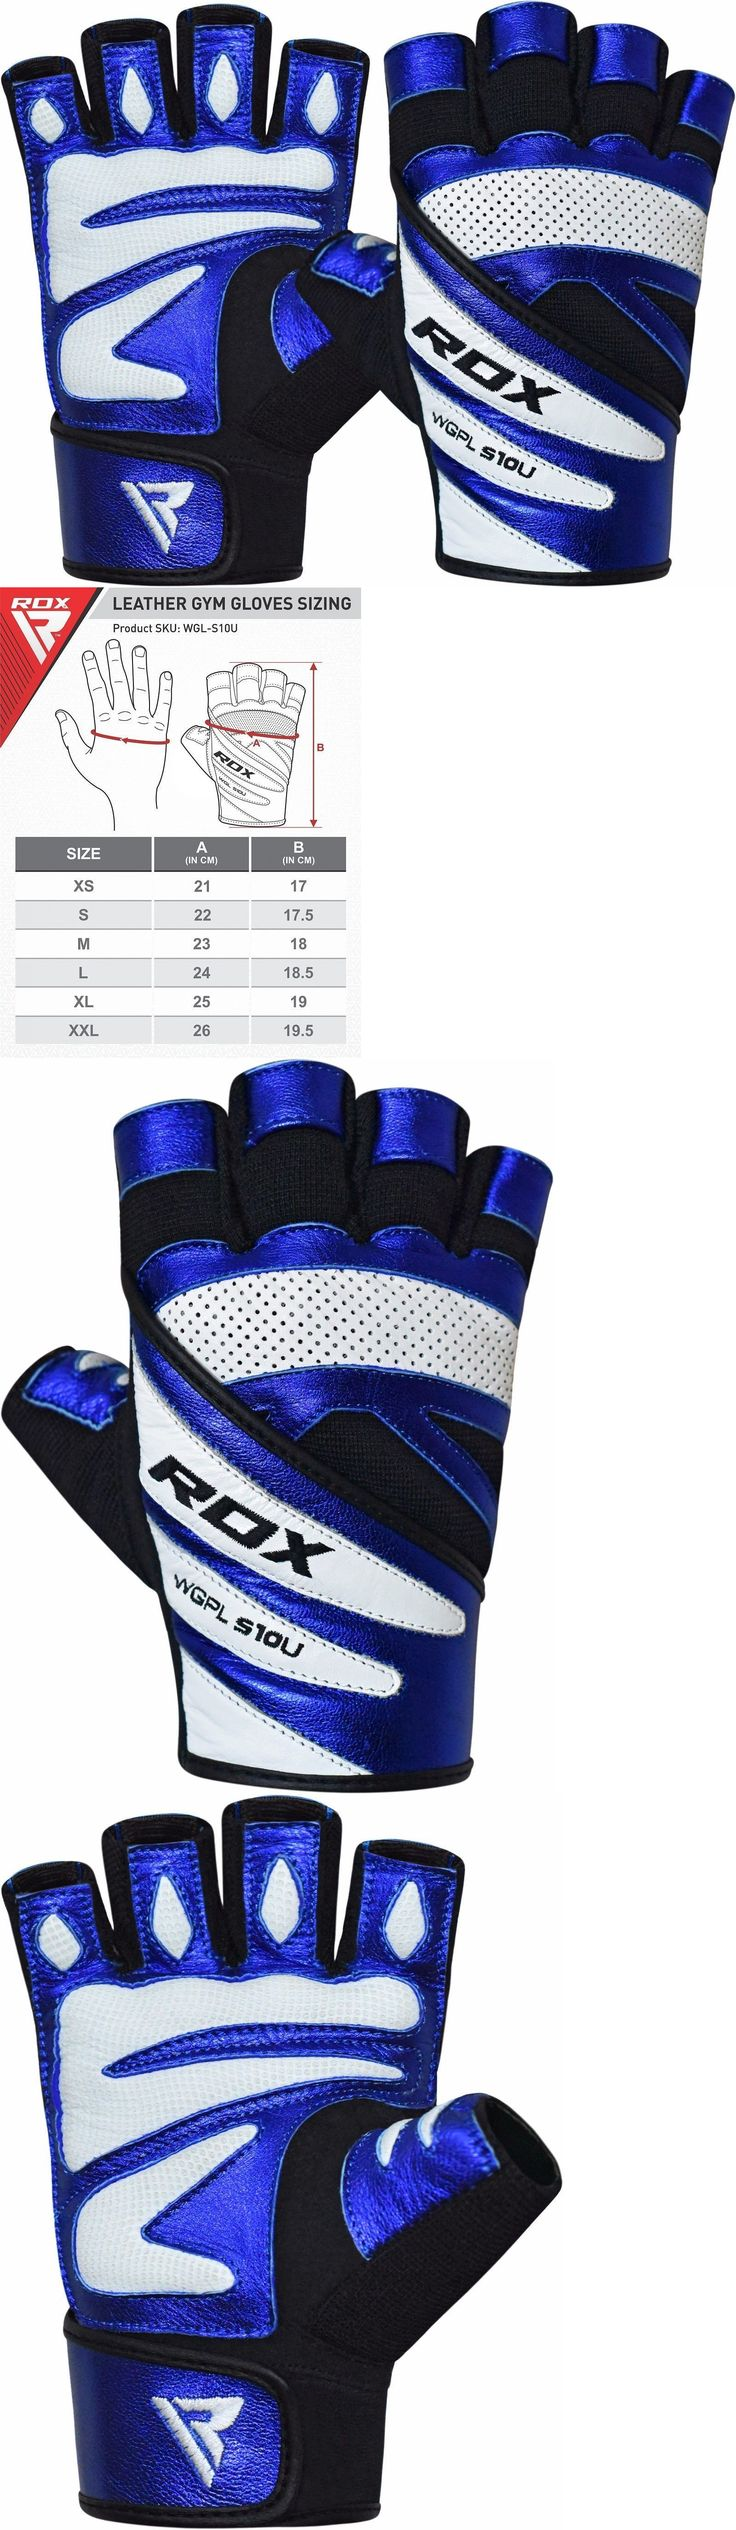 Gloves Straps and Hooks 179820: Rdx Weight Lifting Gloves Fitness Gym Crossfit Bodybuilding Training Workout BUY IT NOW ONLY: $37.49